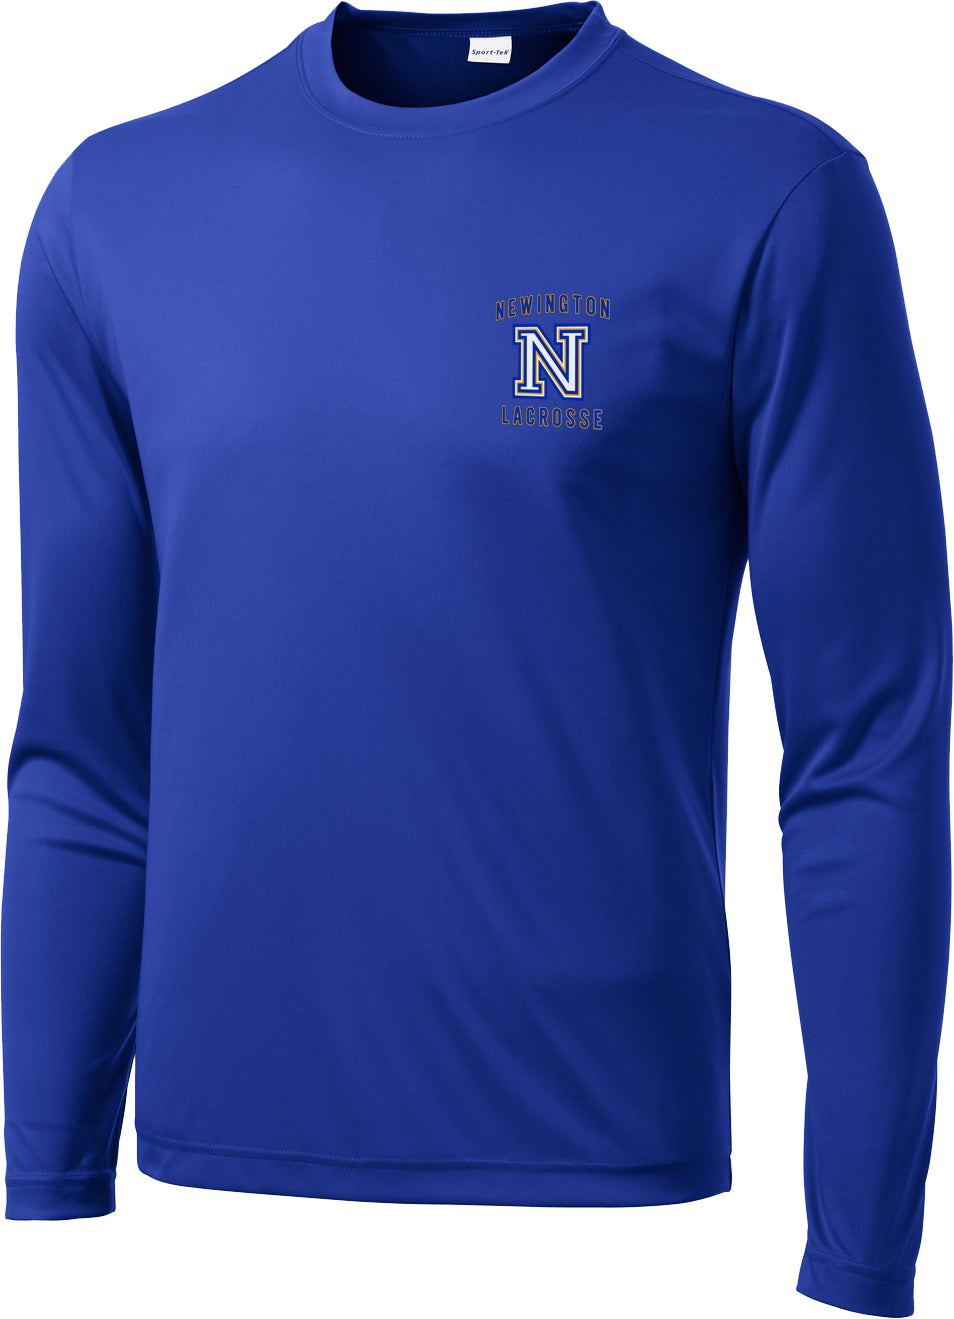 Newington Lacrosse Royal Long Sleeve Performance Shirt